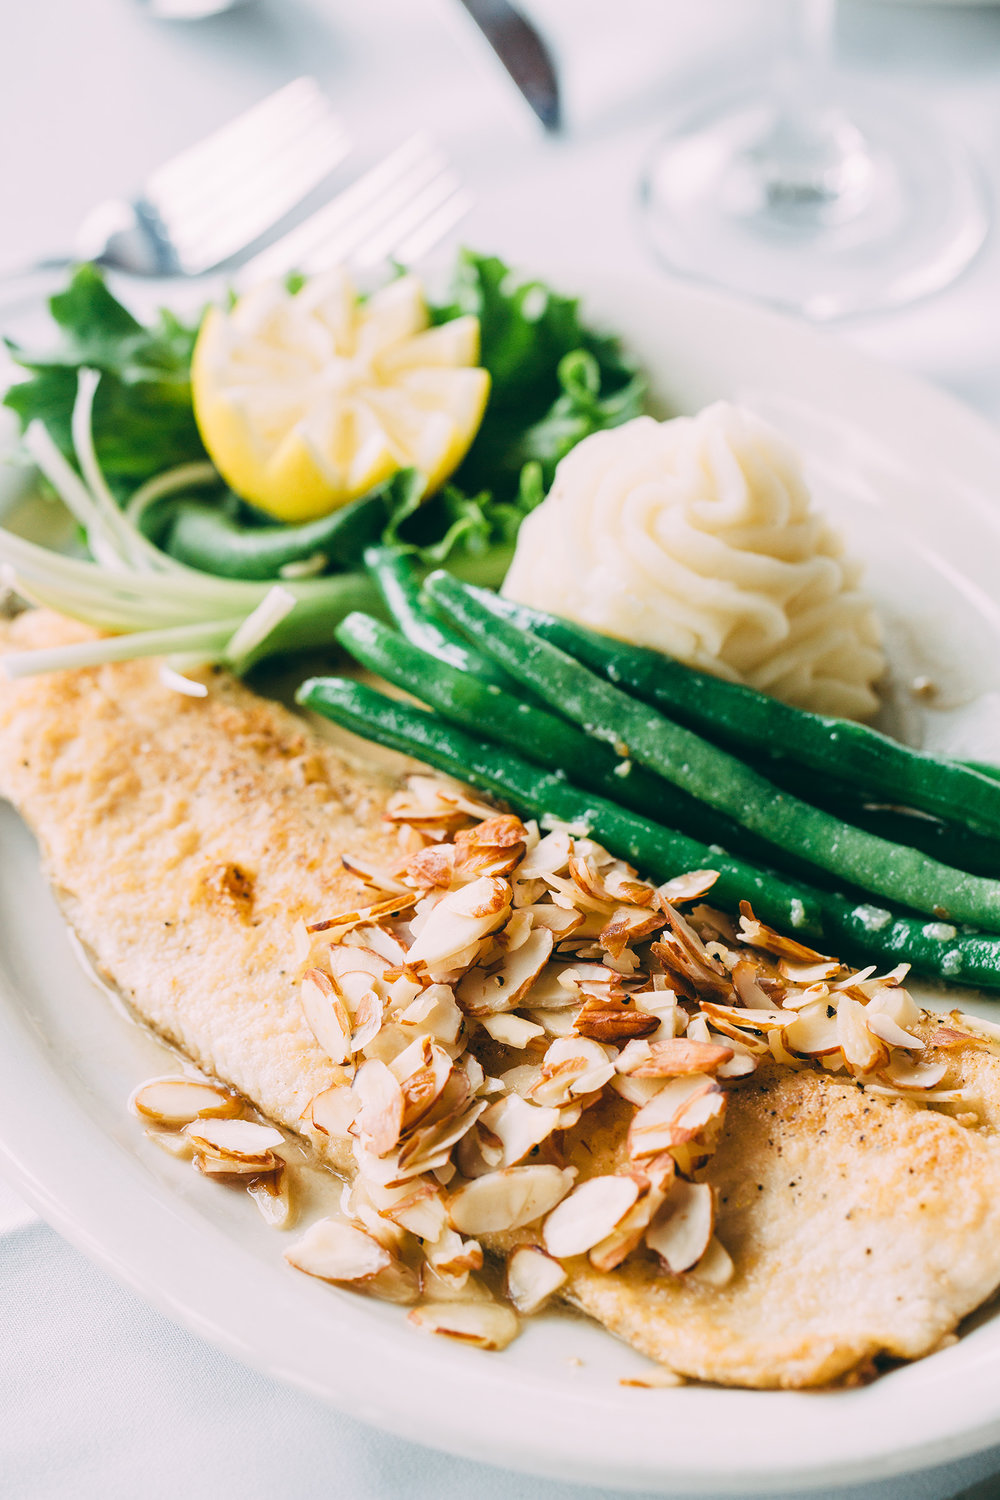 Learn how to recreate this traditional rainbow trout dish from Gaston's Resort on page 18.